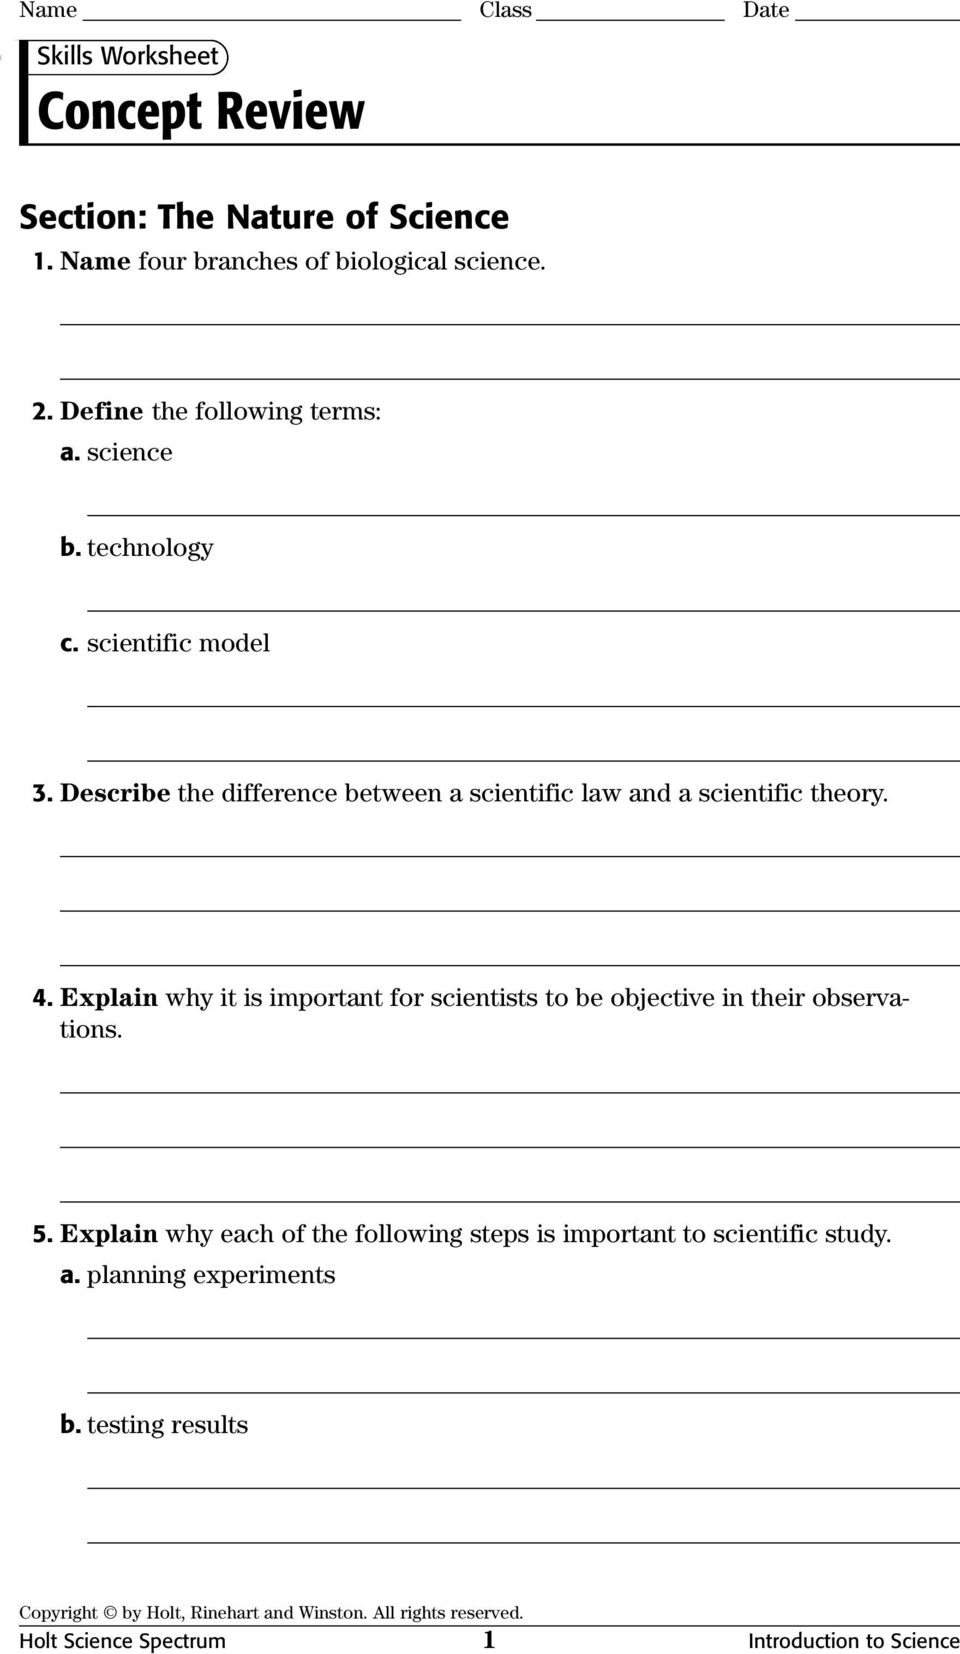 Worksheets Physical Science Worksheets Answers physical science concept review worksheets with answer keys pdf explain why it is important for scientists to be objective in their observations 5